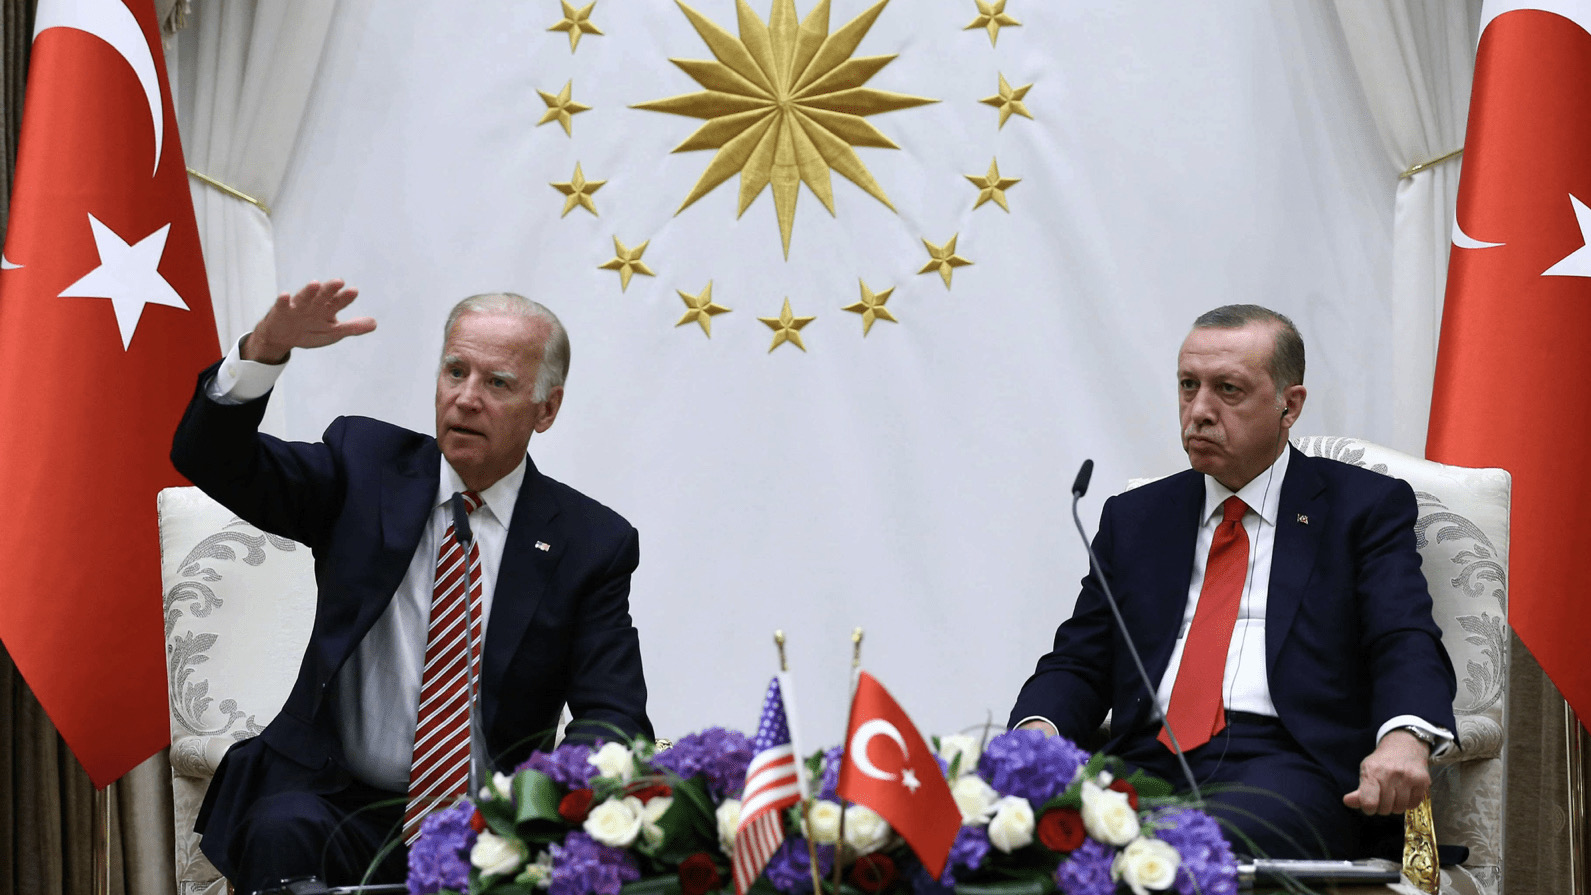 Will Biden be able to stop Erdogan's neo-Ottoman expansionism?